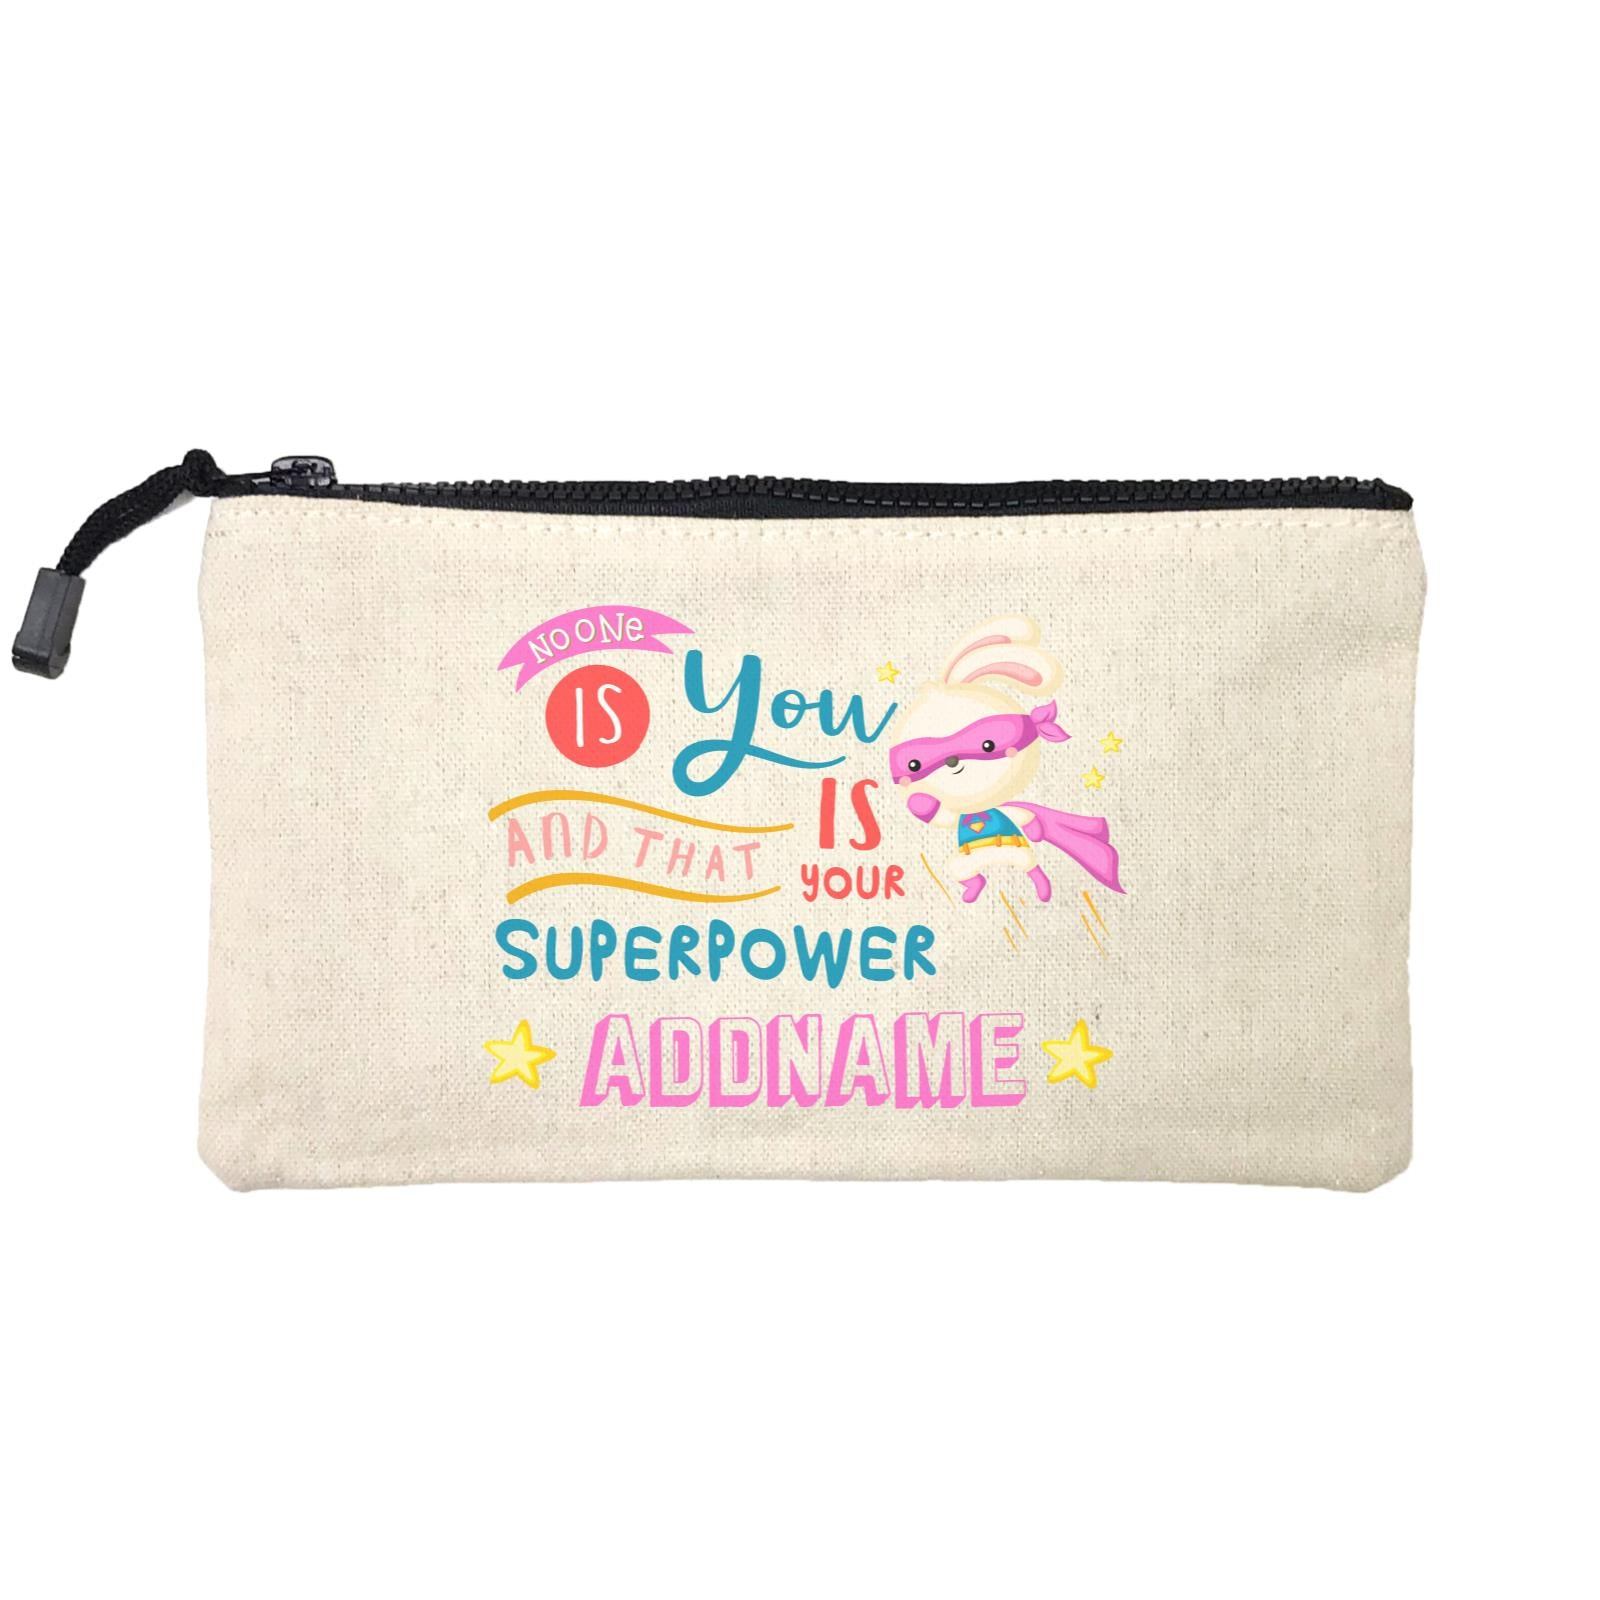 Children's Day Gift Series No One Is You And That Is Your Superpower Pink Addname SP Stationery Pouch